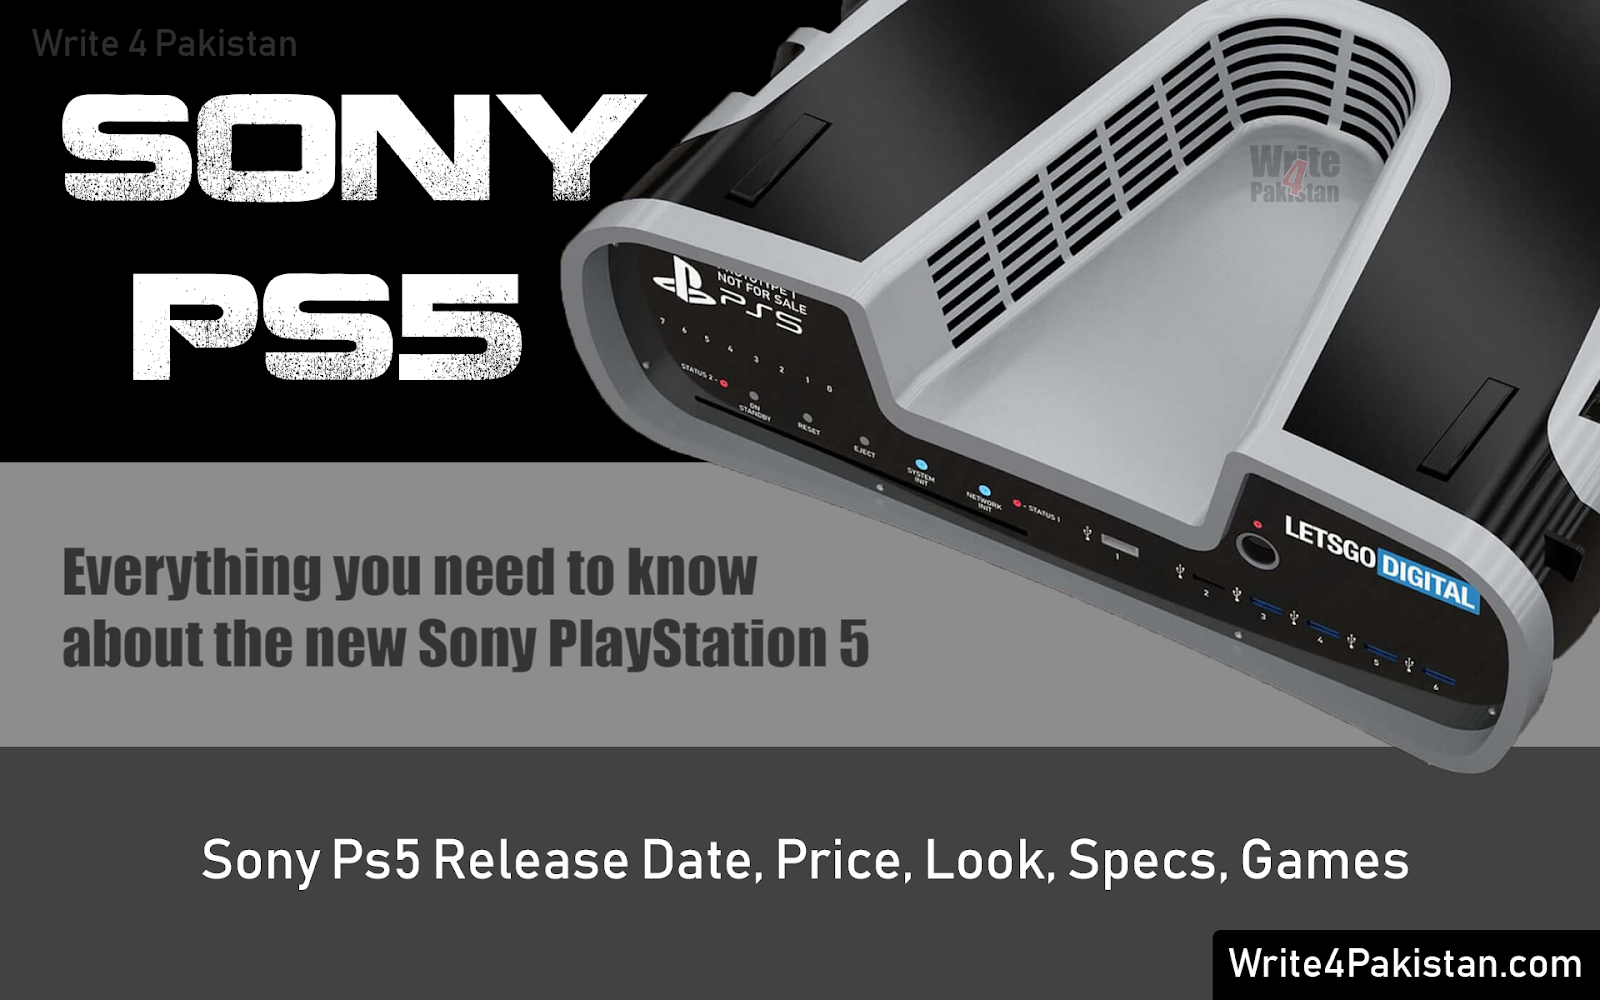 PS5, Playstation 5, SONY PS5, PS5 Release date, ps5 price, ps5 specs, ps5 games, ps5 design, ps5 look, ps5 price in pakistan, ps5 news